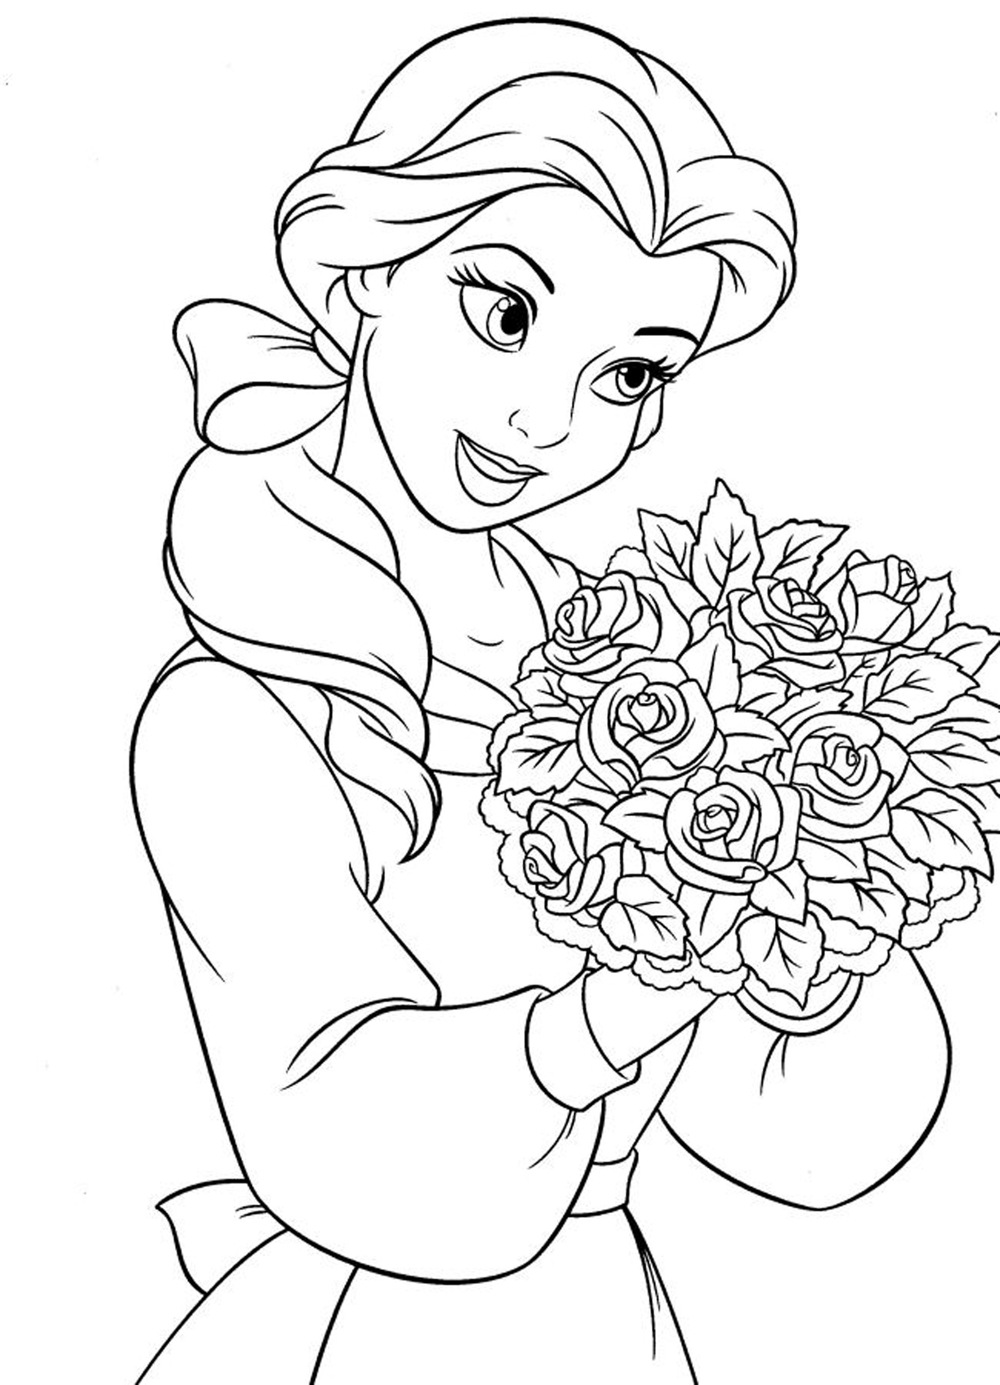 disney princess tiana printable coloring page